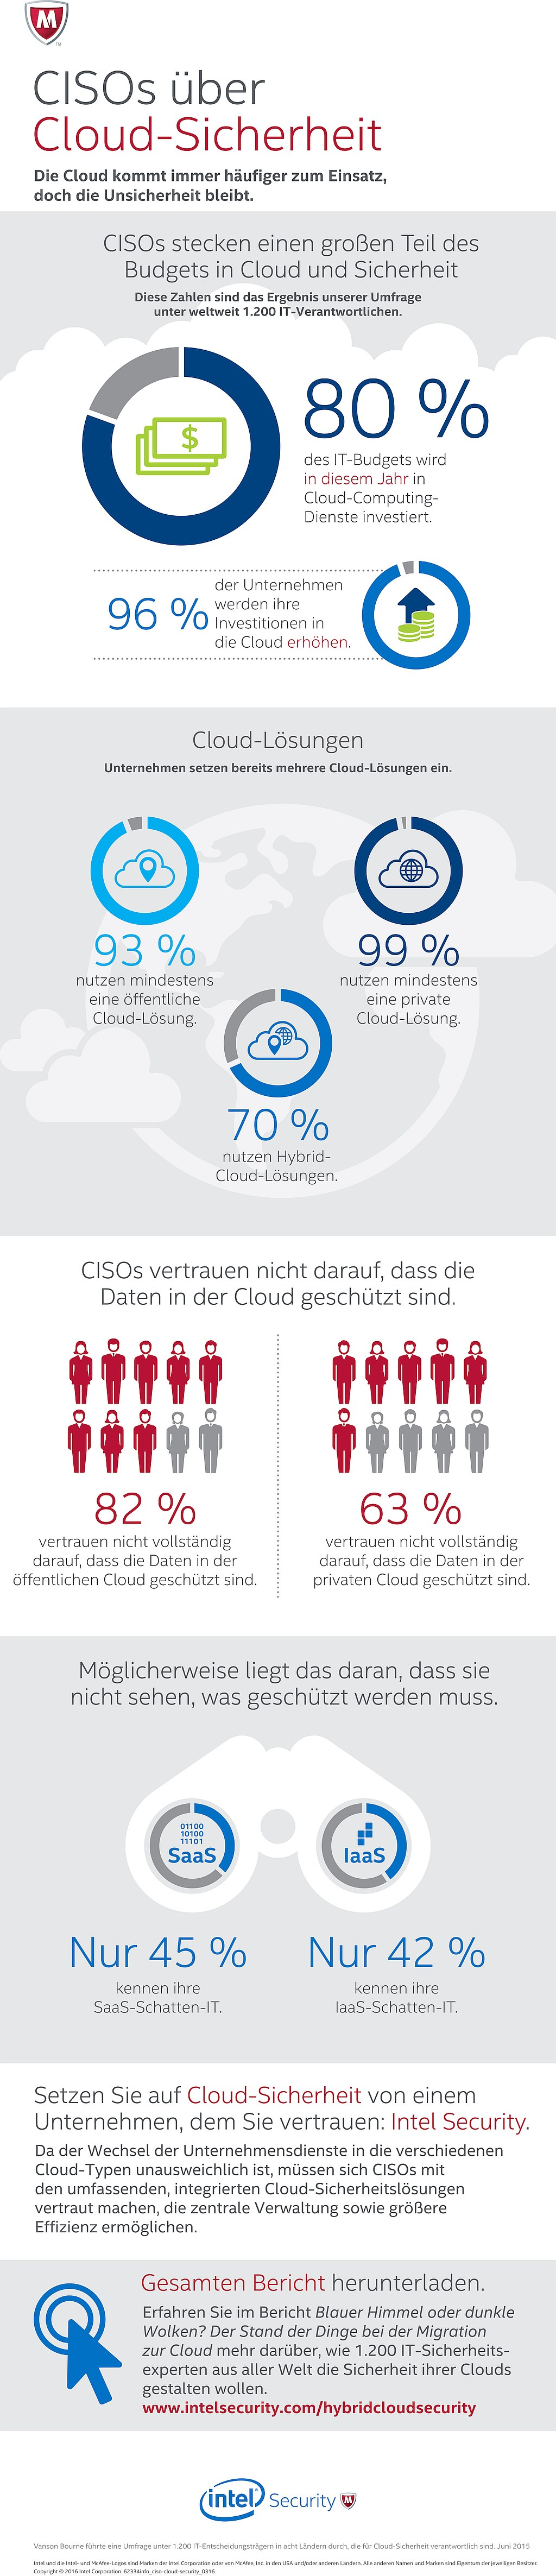 infografi Intel Security - CISOs über Cloud-Sicherheit